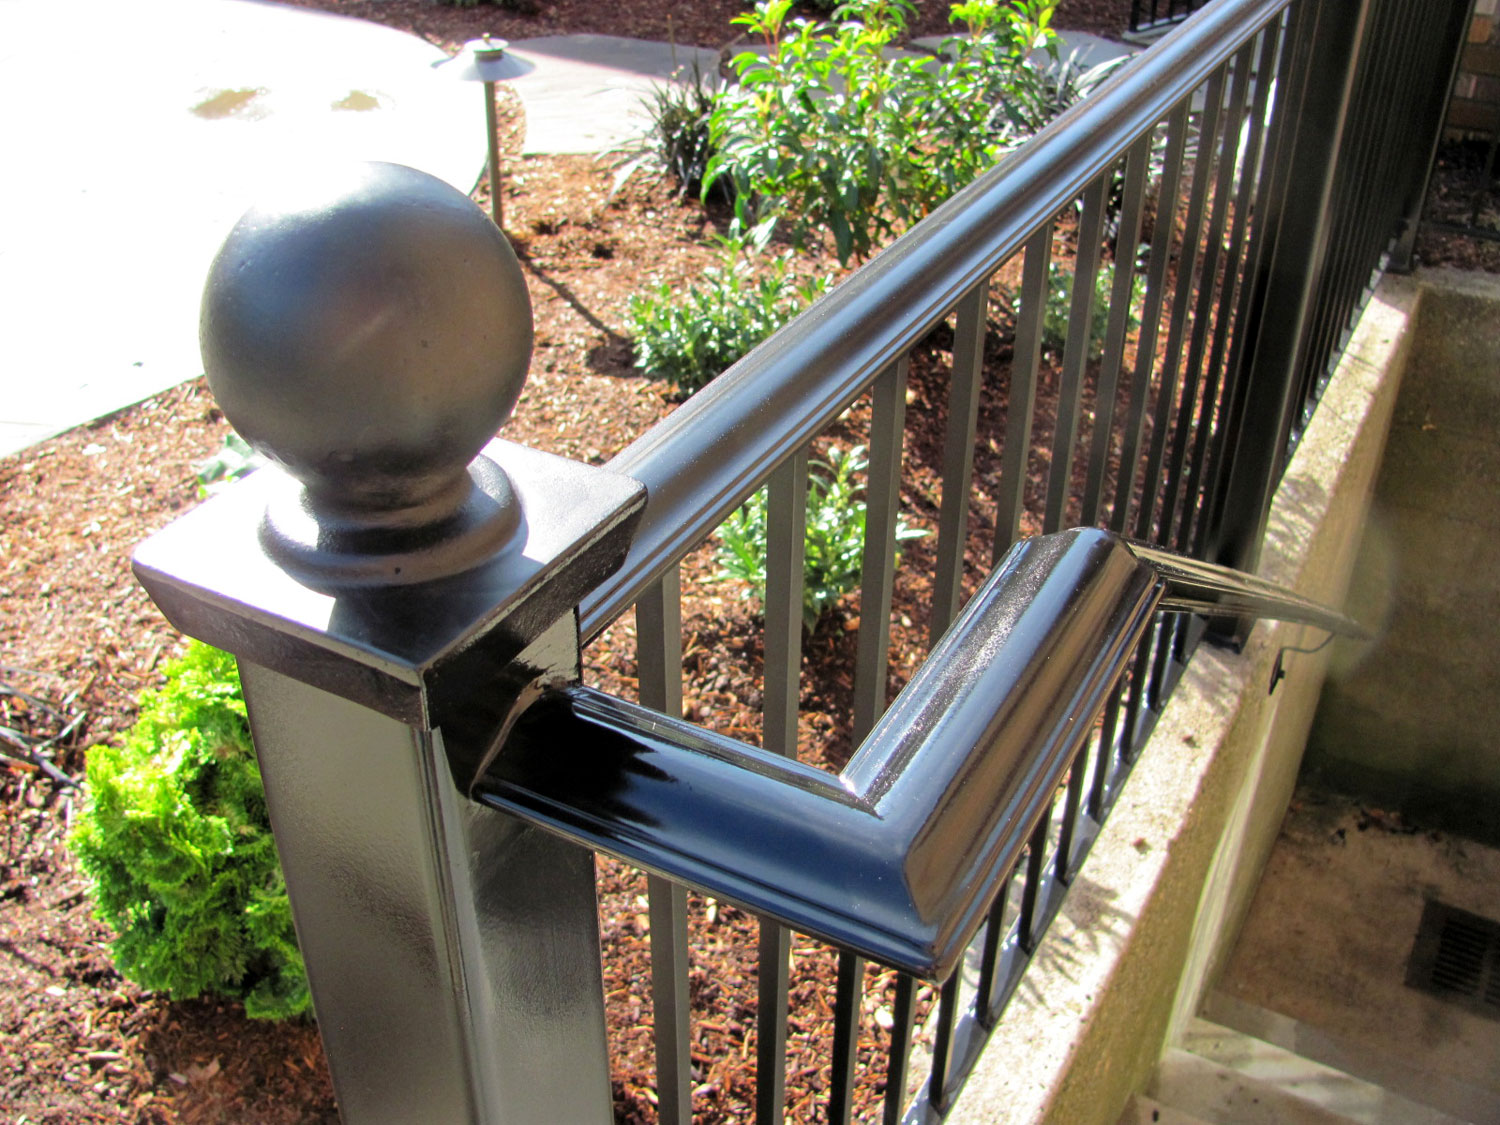 Handrail and Guardrail for Exterior Basement Steps - Closeup - Seattle, WA